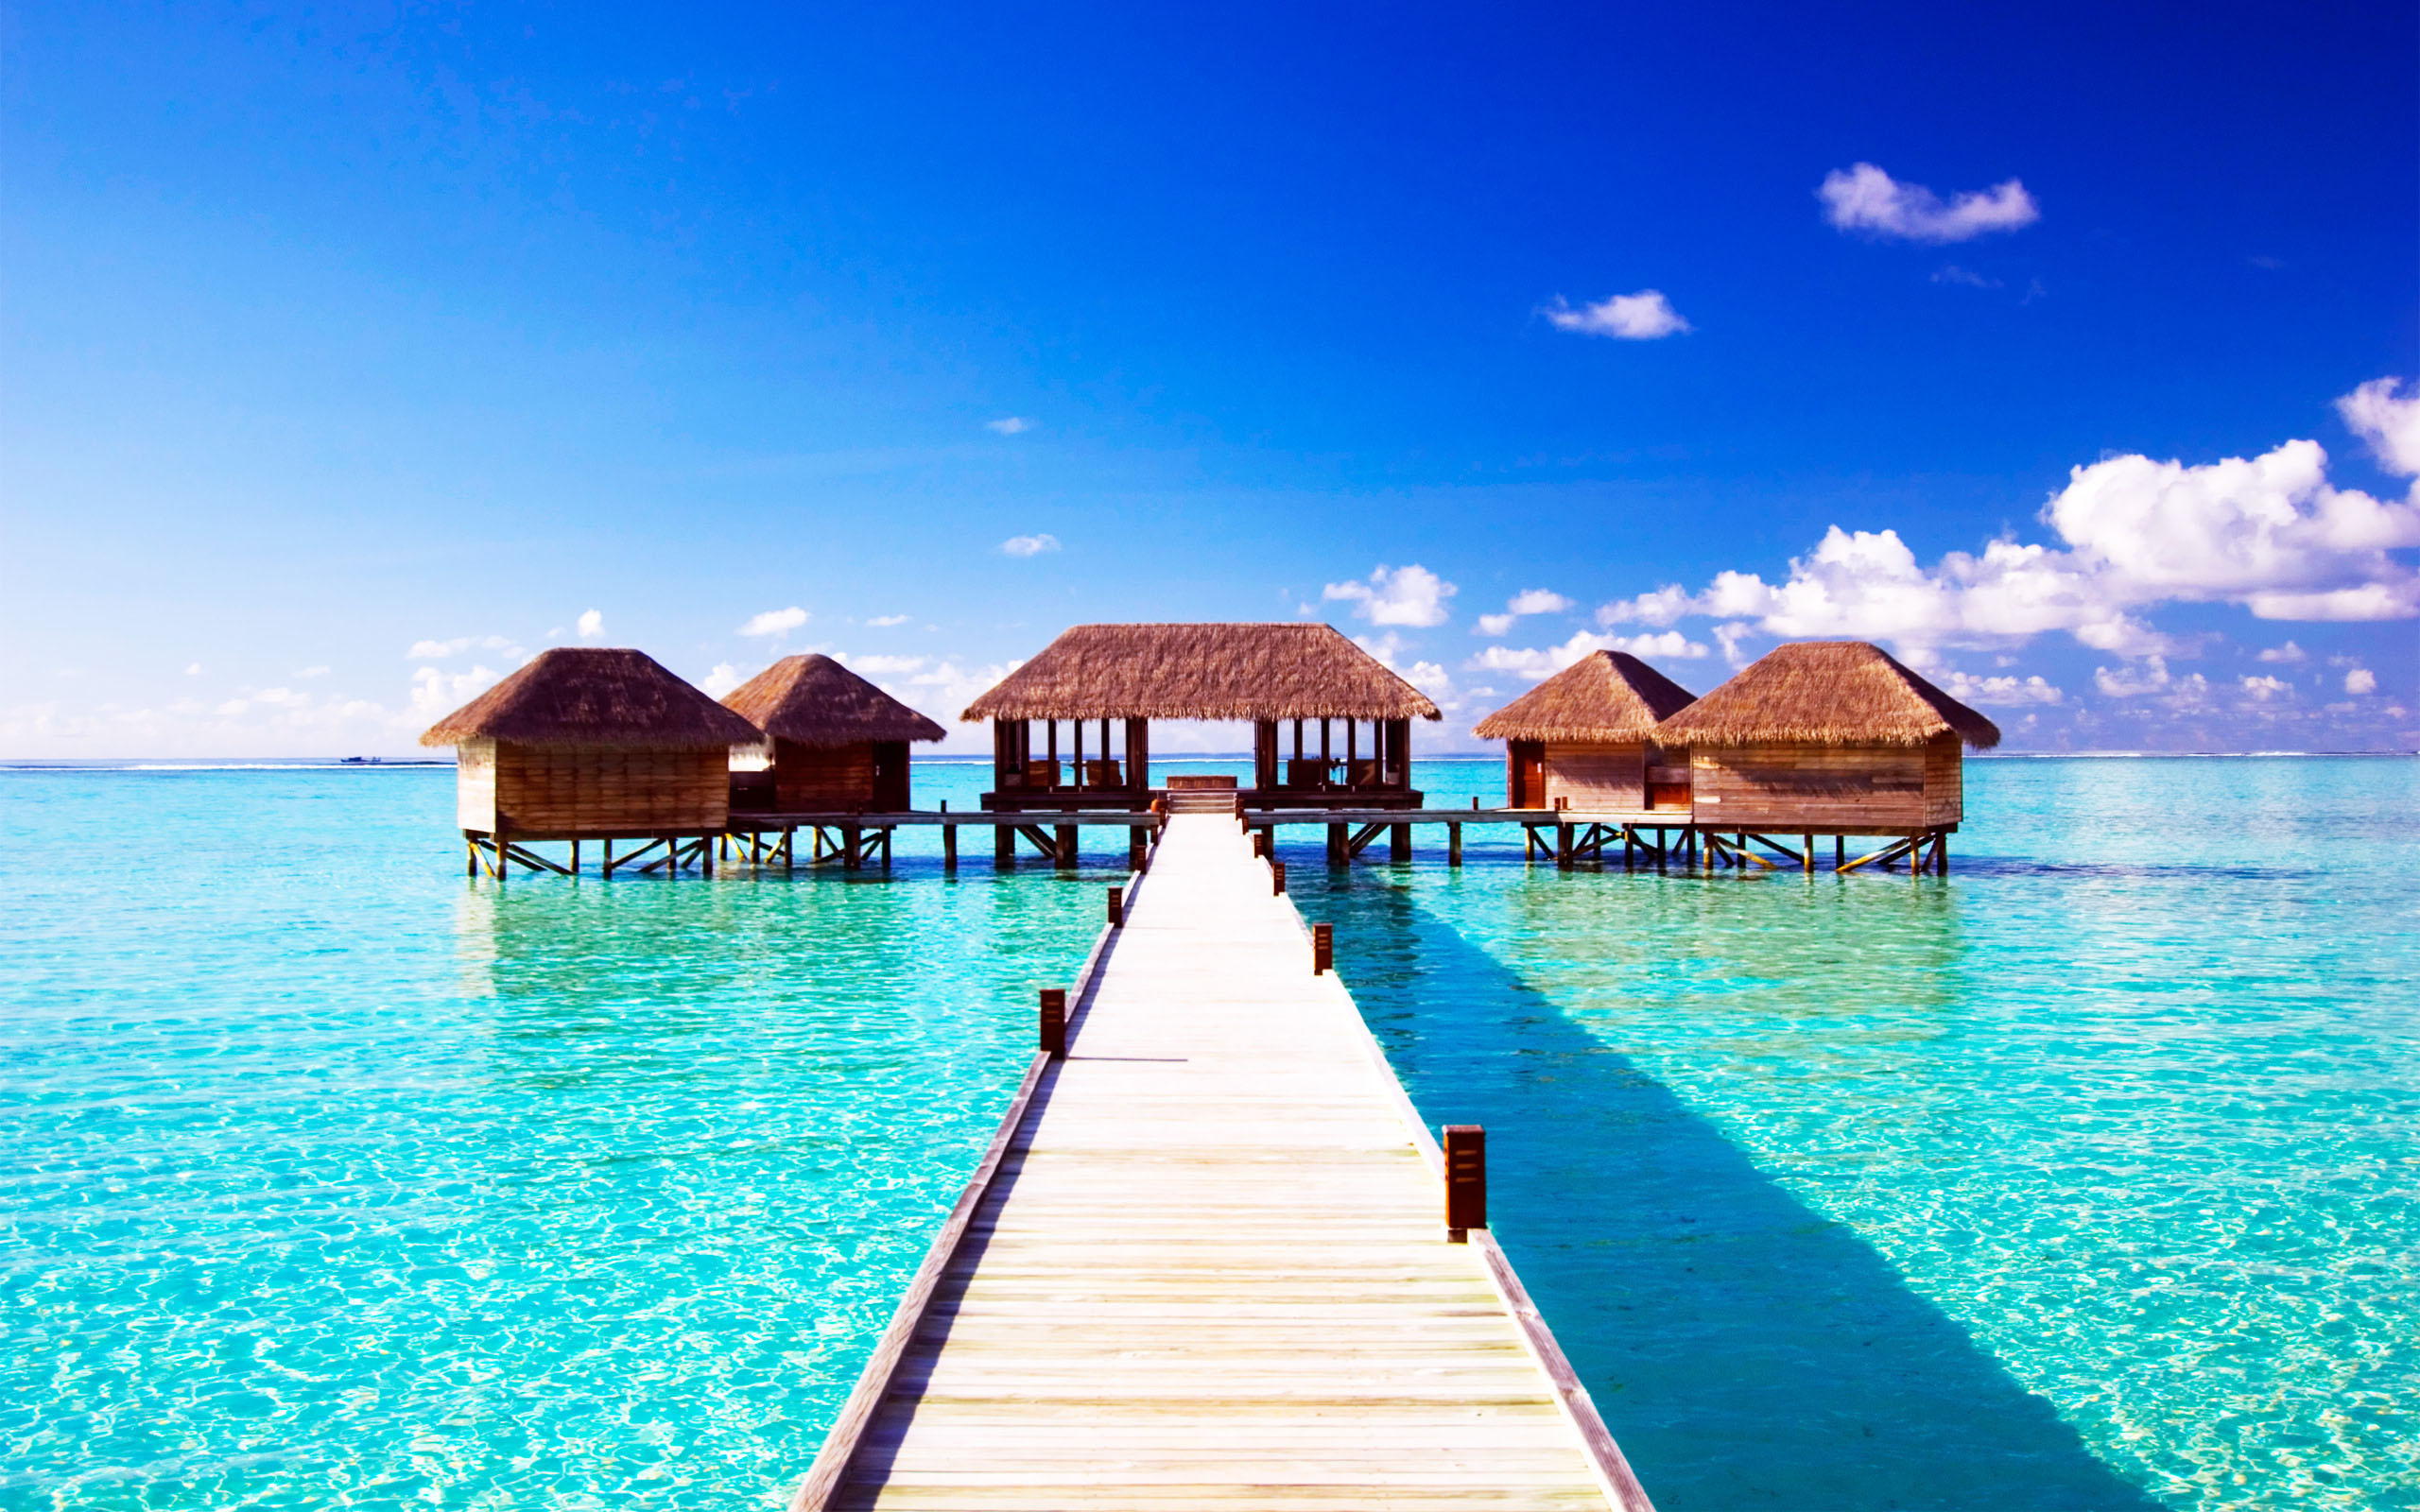 Maldives Beach Wallpapers Best Wallpapers 2560x1600